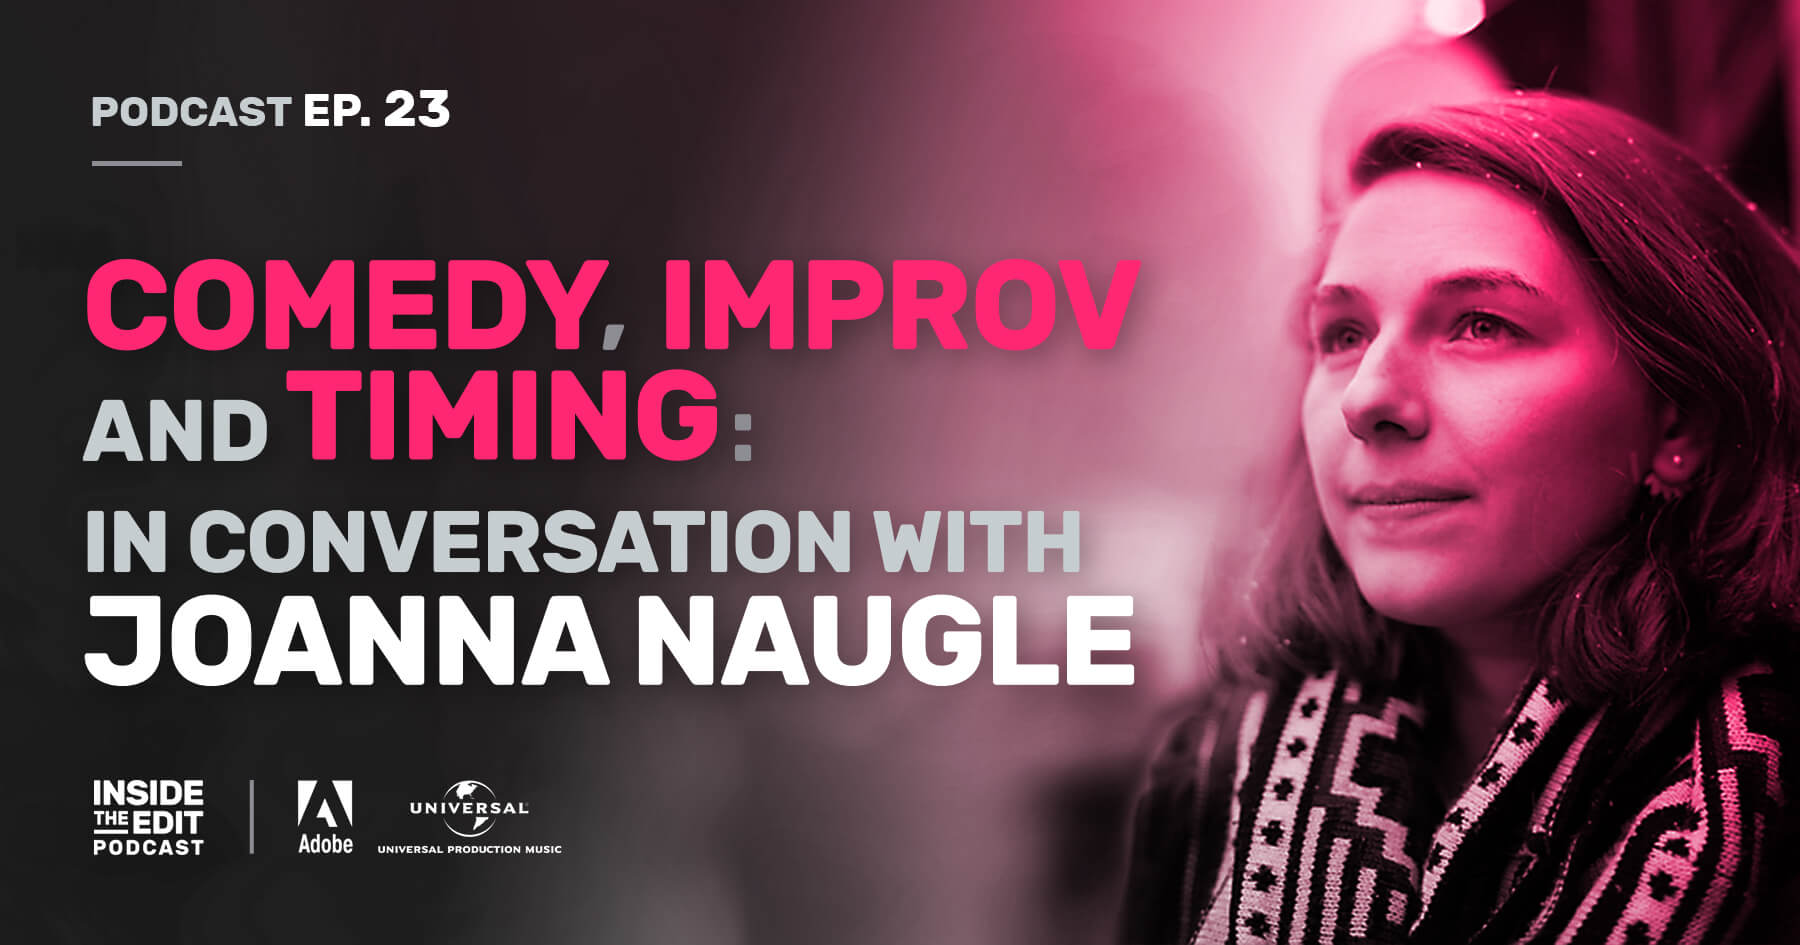 Comedy, Improv and Timing: In Conversation with Joanna Naugle